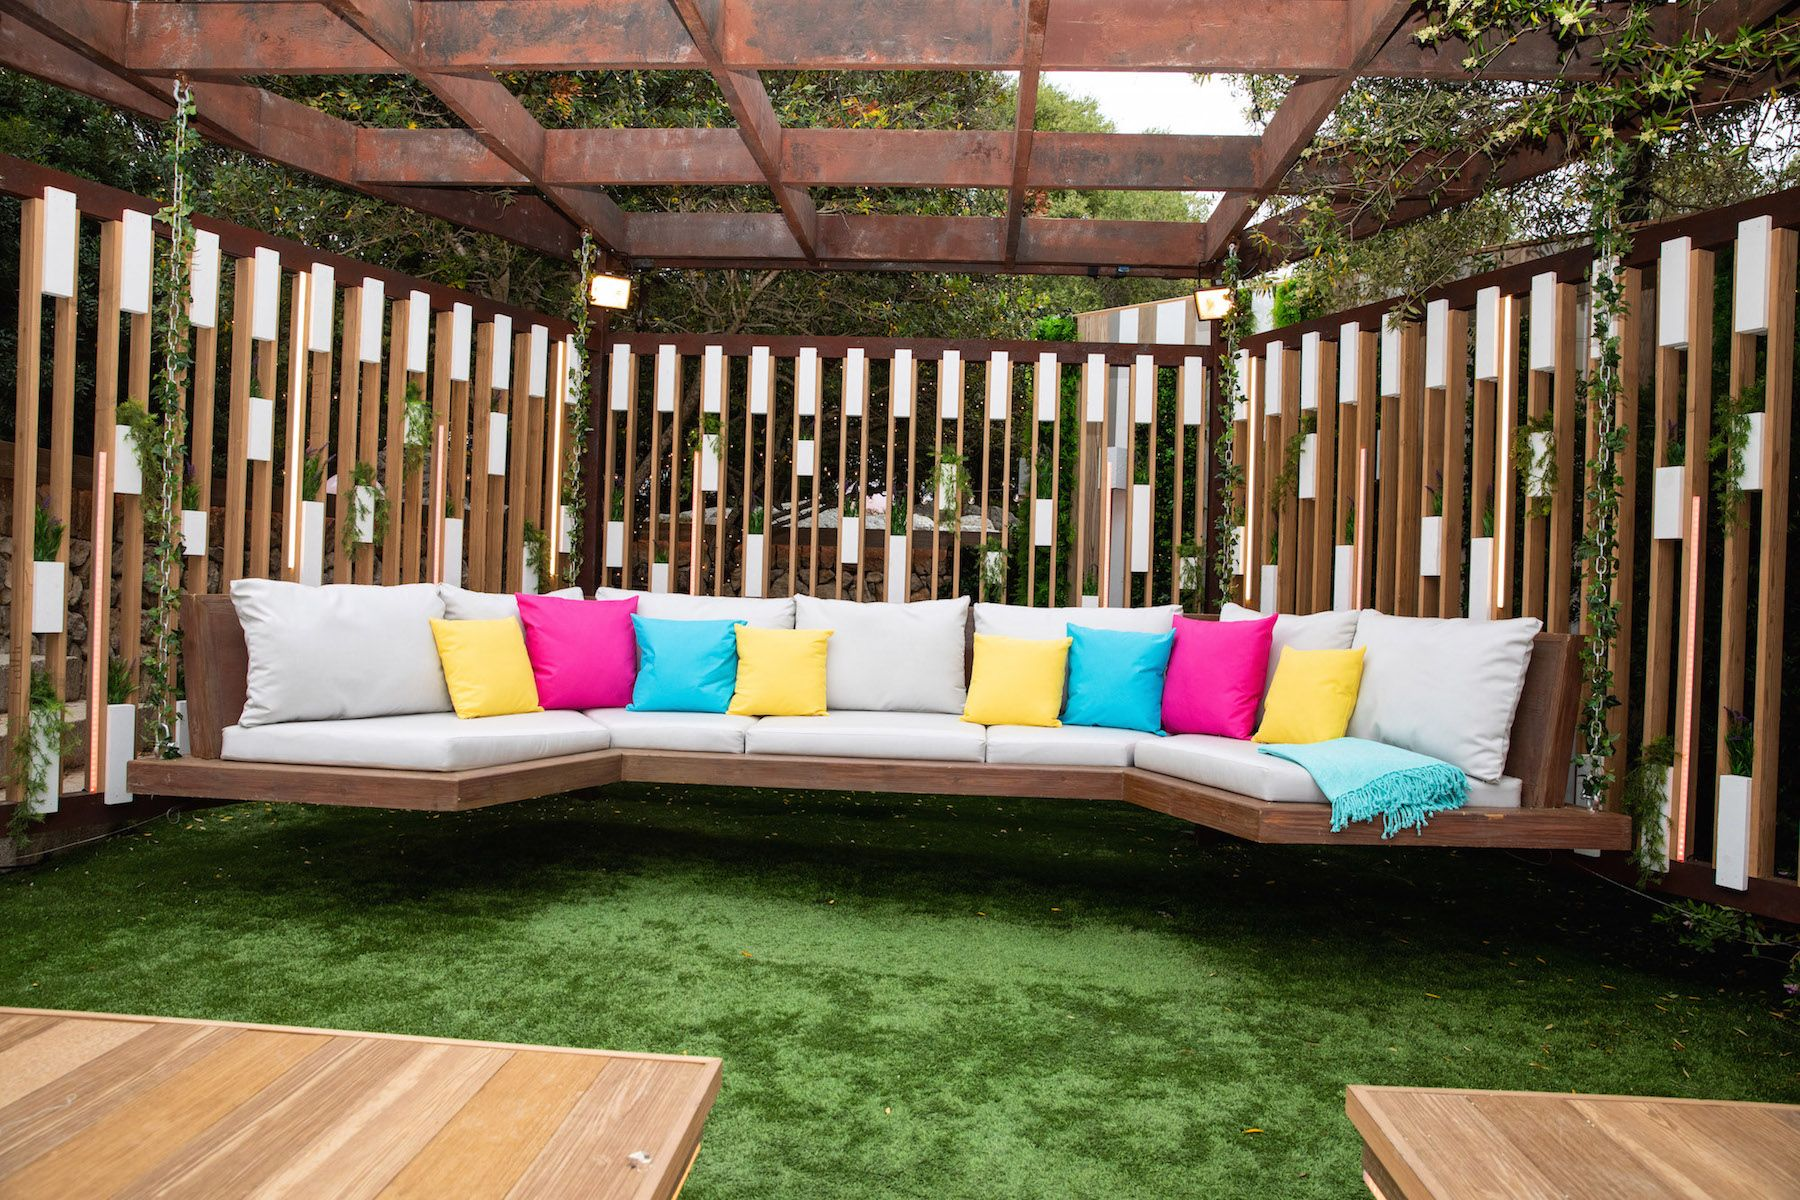 Love Island Villa 2019 First Look Inside The New Location-7659